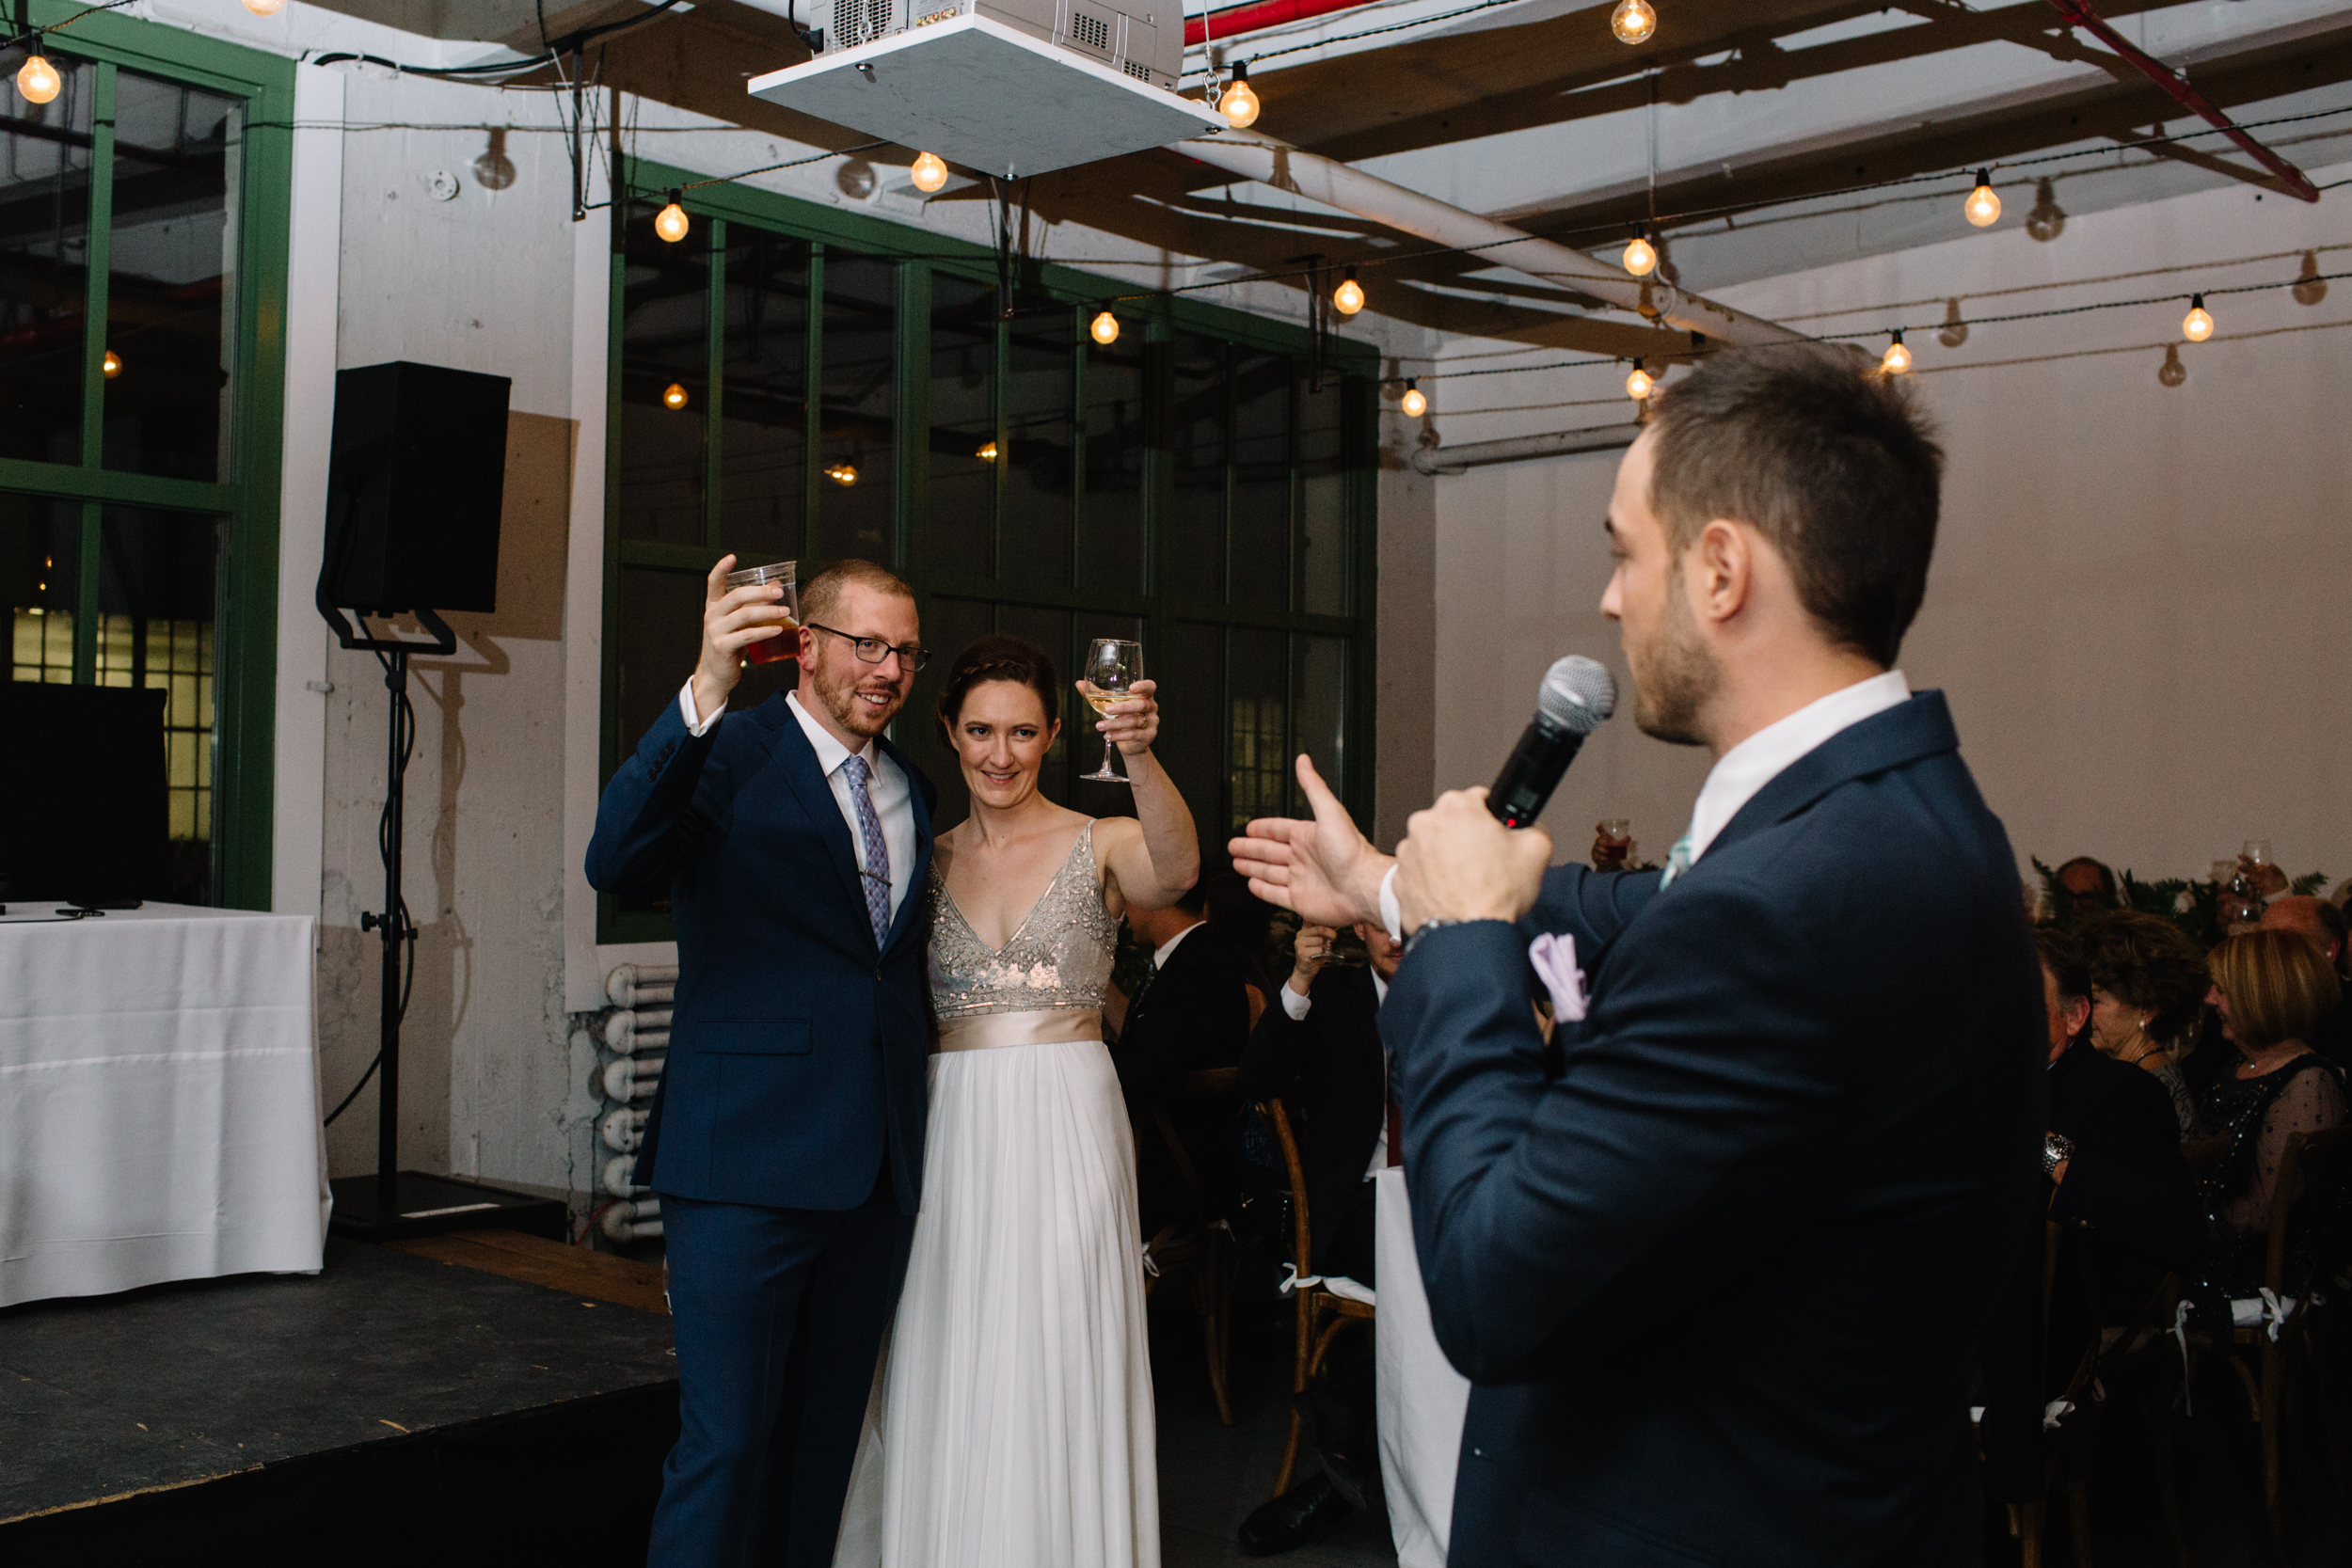 brooklynindustrialweddingphotographer-2-5